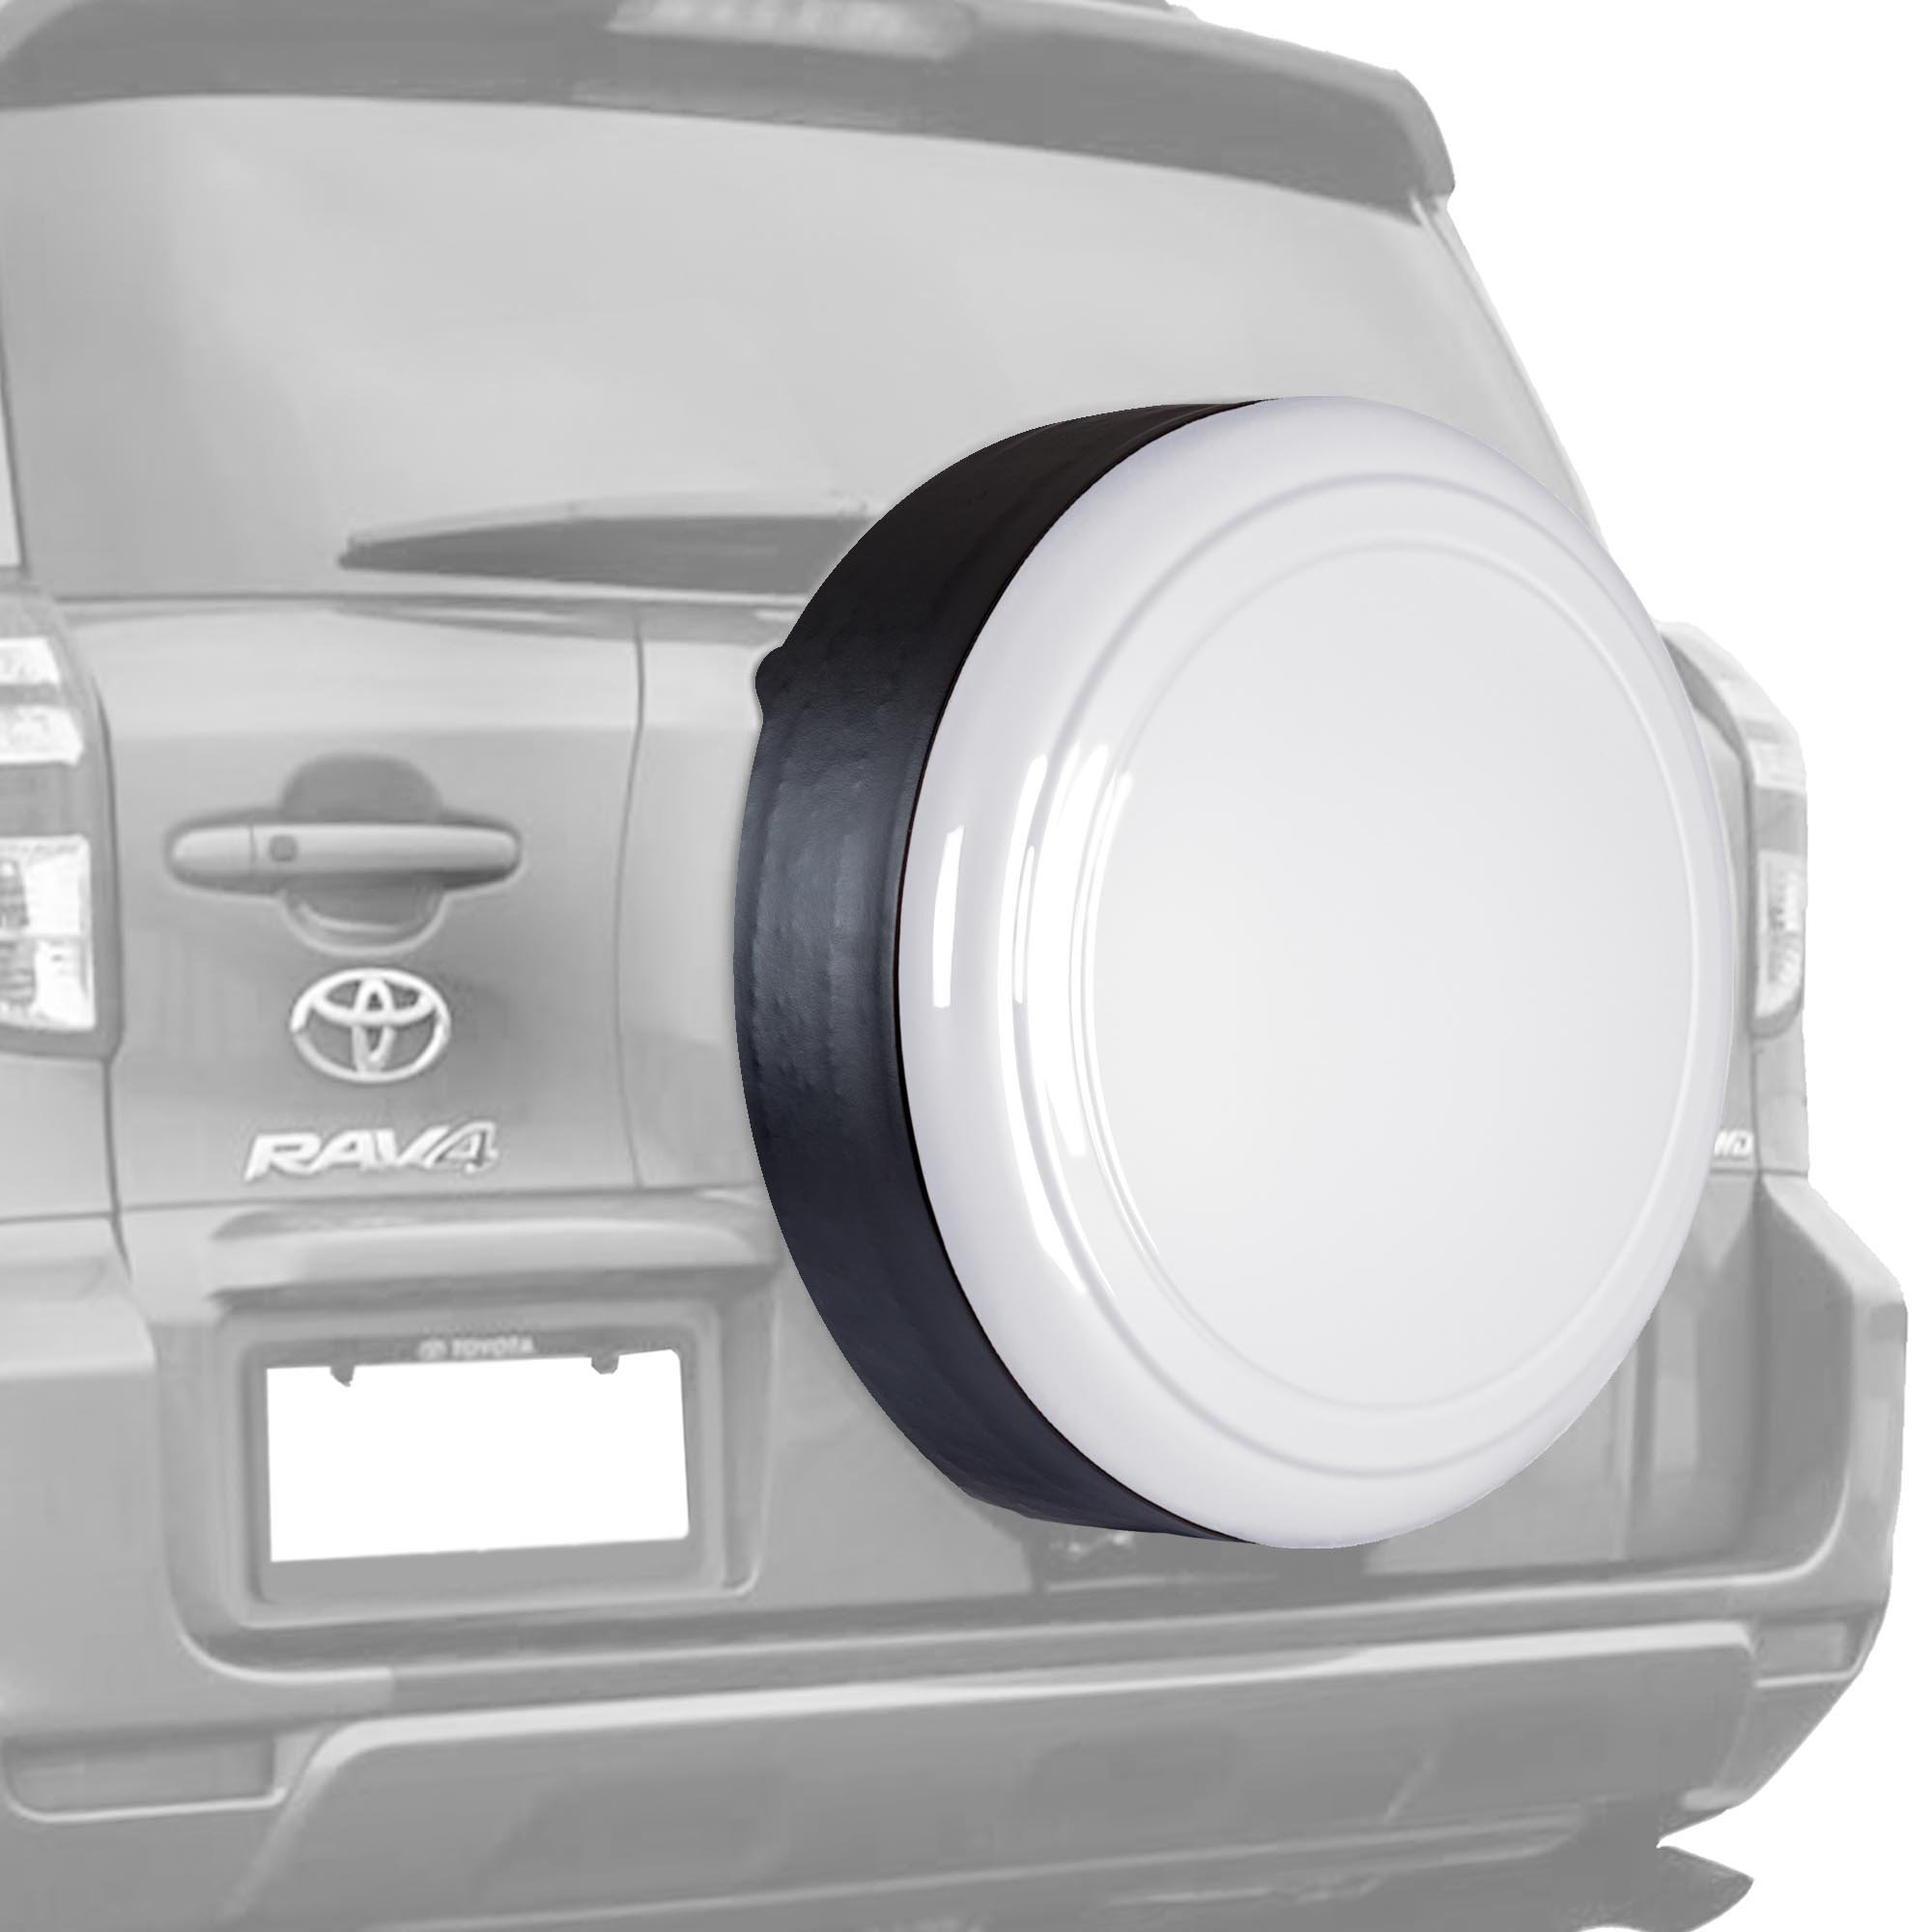 06-12 Toyota RAV4 - 28'' Color Matched Rigid Tire Cover (Plastic Face & Vinyl Band) - Super White by Boomerang (Image #1)